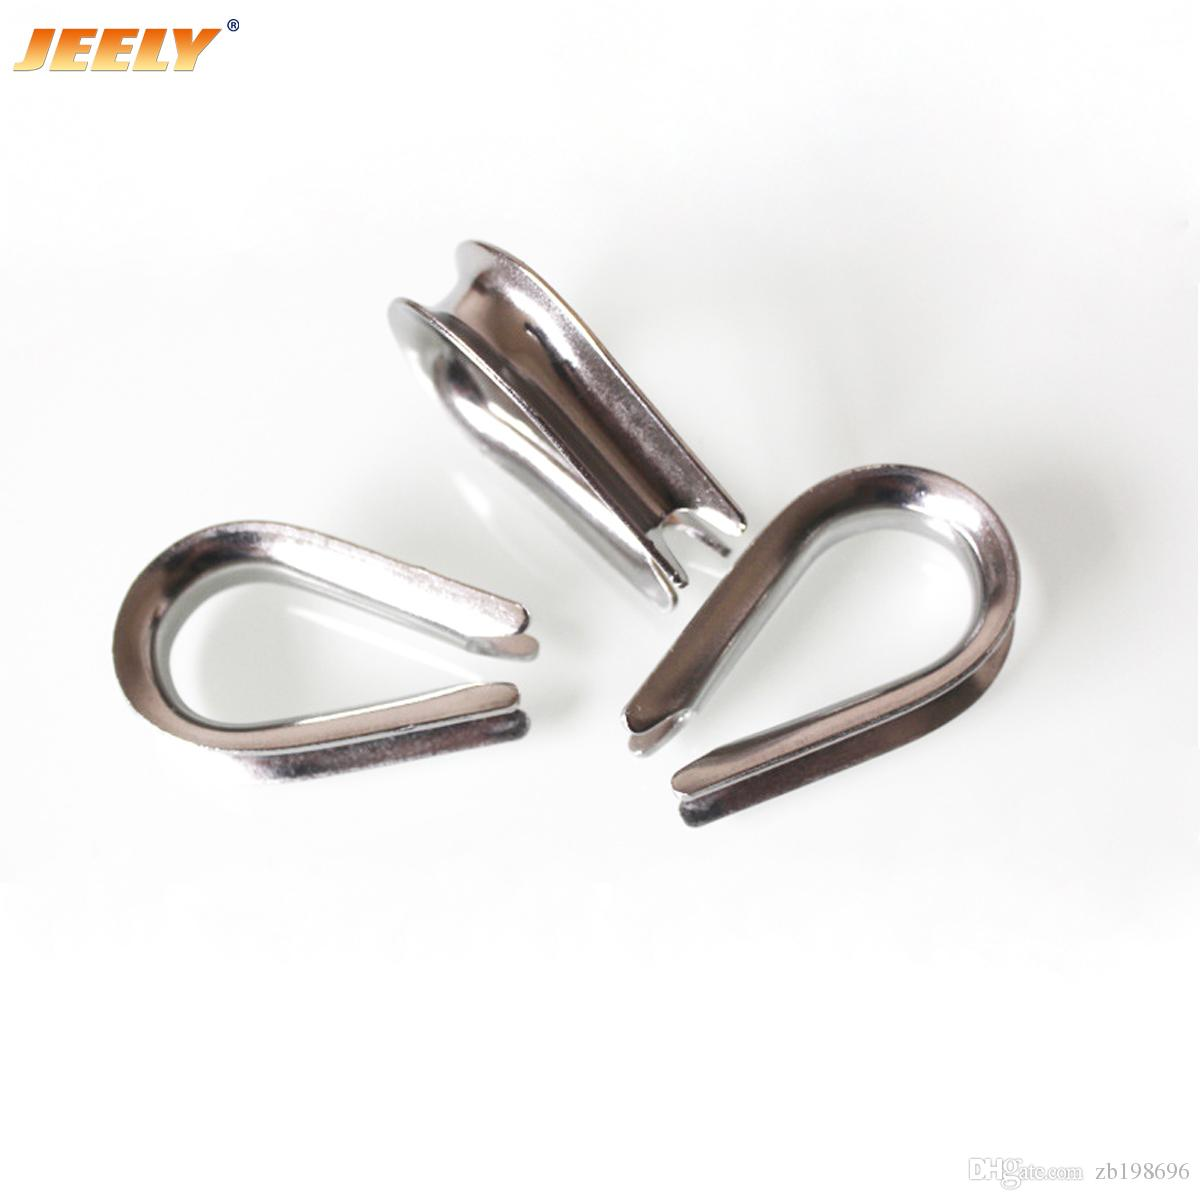 Europe 304 Stainless Steel Wire Winch Rope Thimble M4 M22 Marine How To A Boat Hardware Online